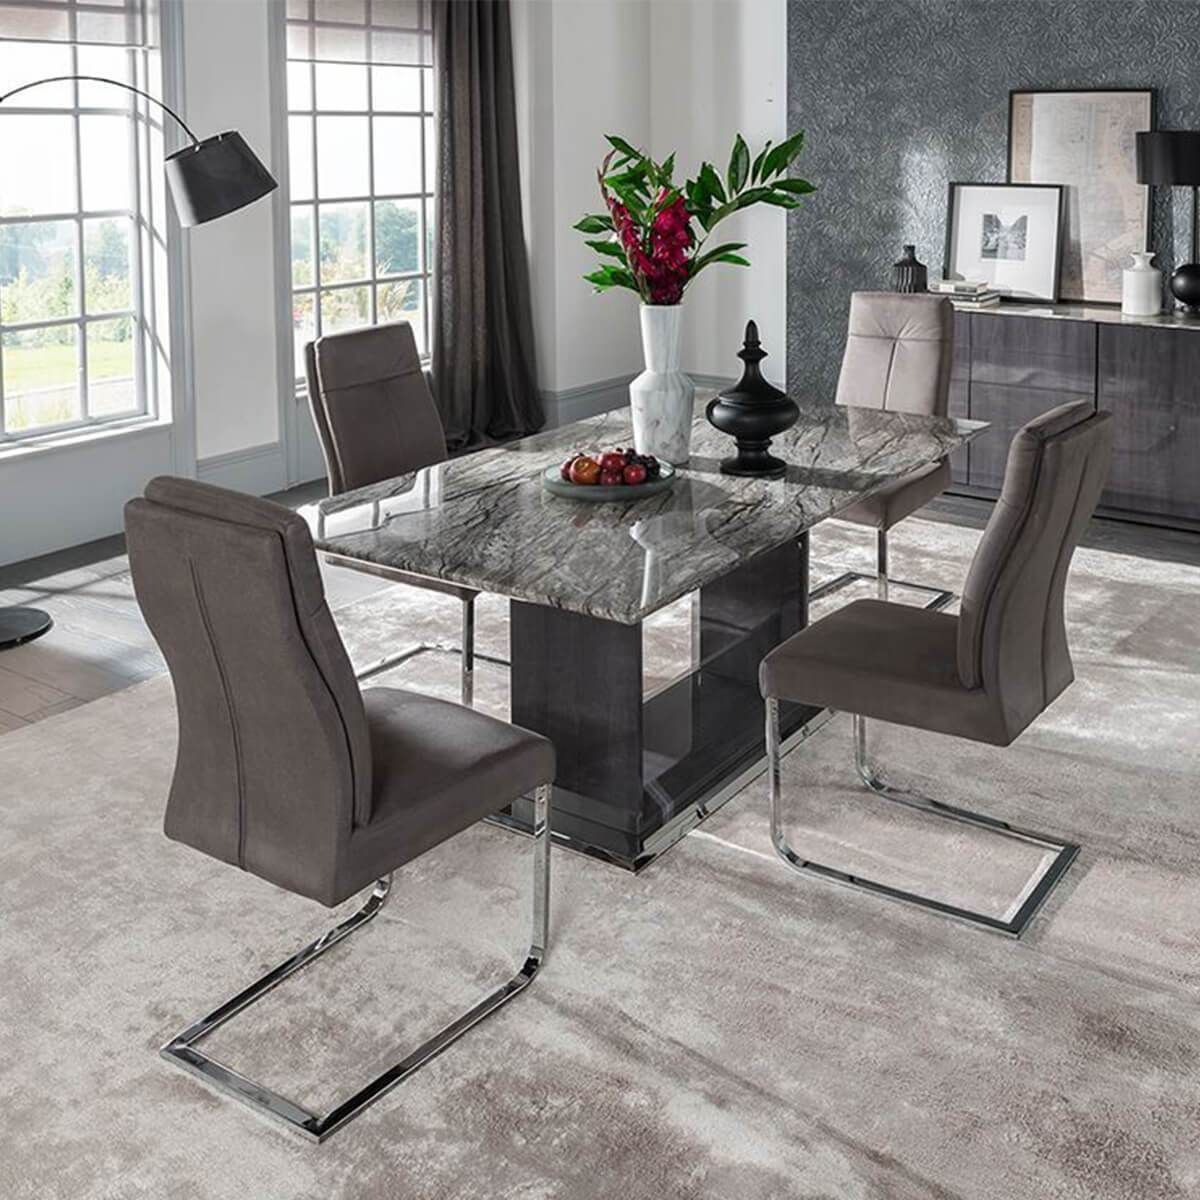 Next Set Of 2 Moda Iii Dining Chairs Grey Dining Table Marble Dining Room Table Marble Marble Dining